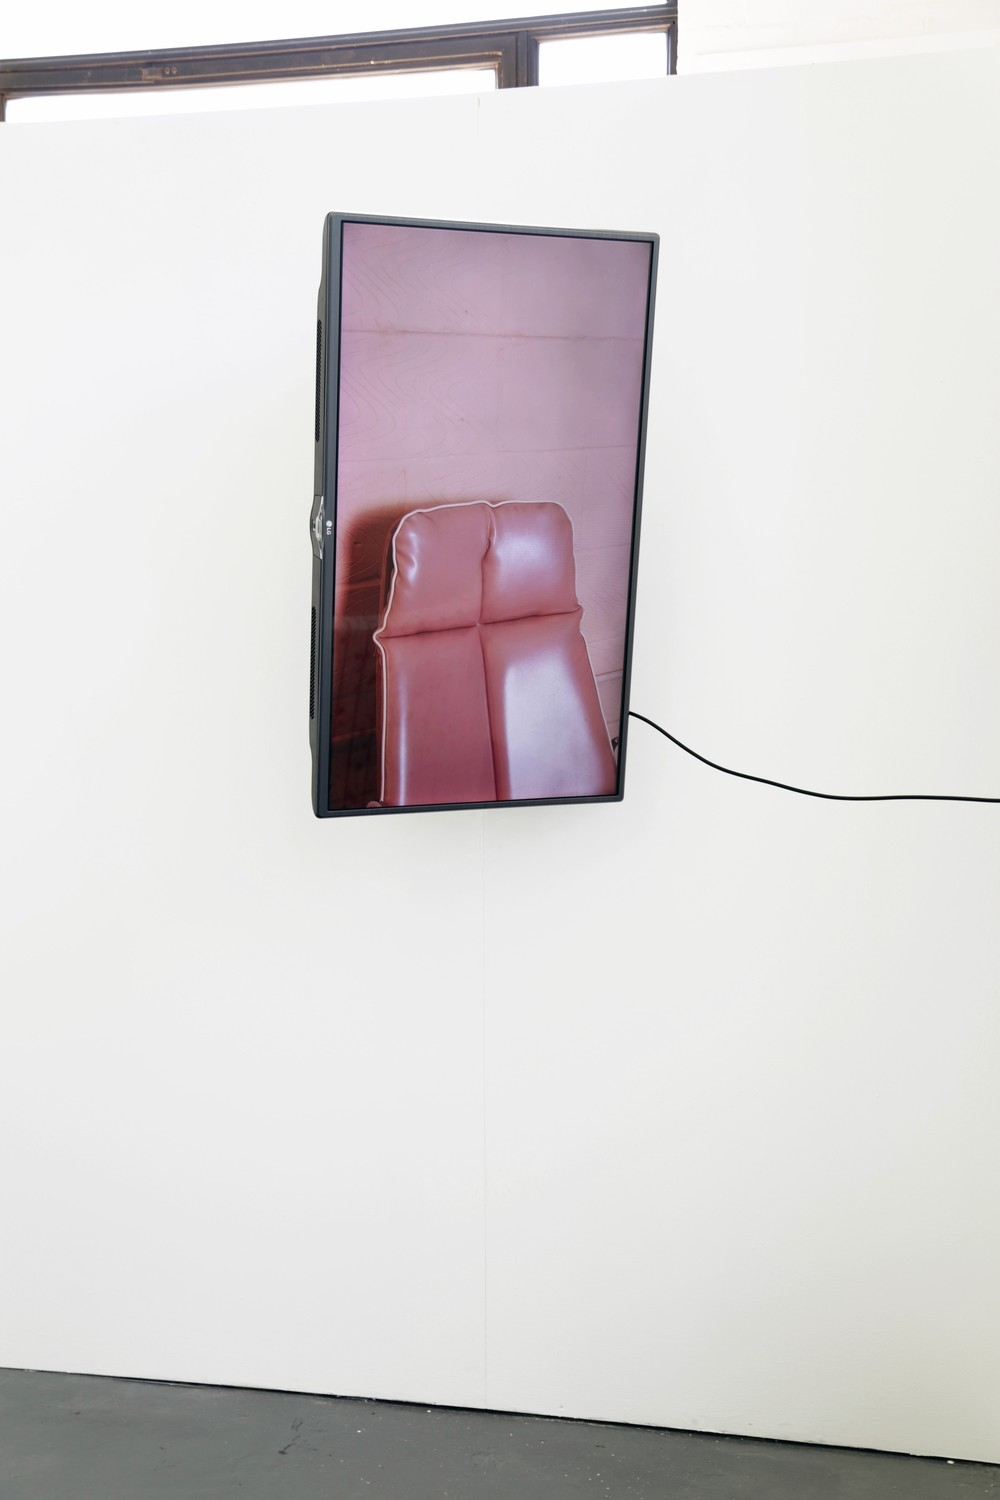 "Camille Yvert – Signaux Extérieurs, Digital photography on 42"" Screen, full motion TV wall mount. 101 x 62.2 x 8cm, 2018"